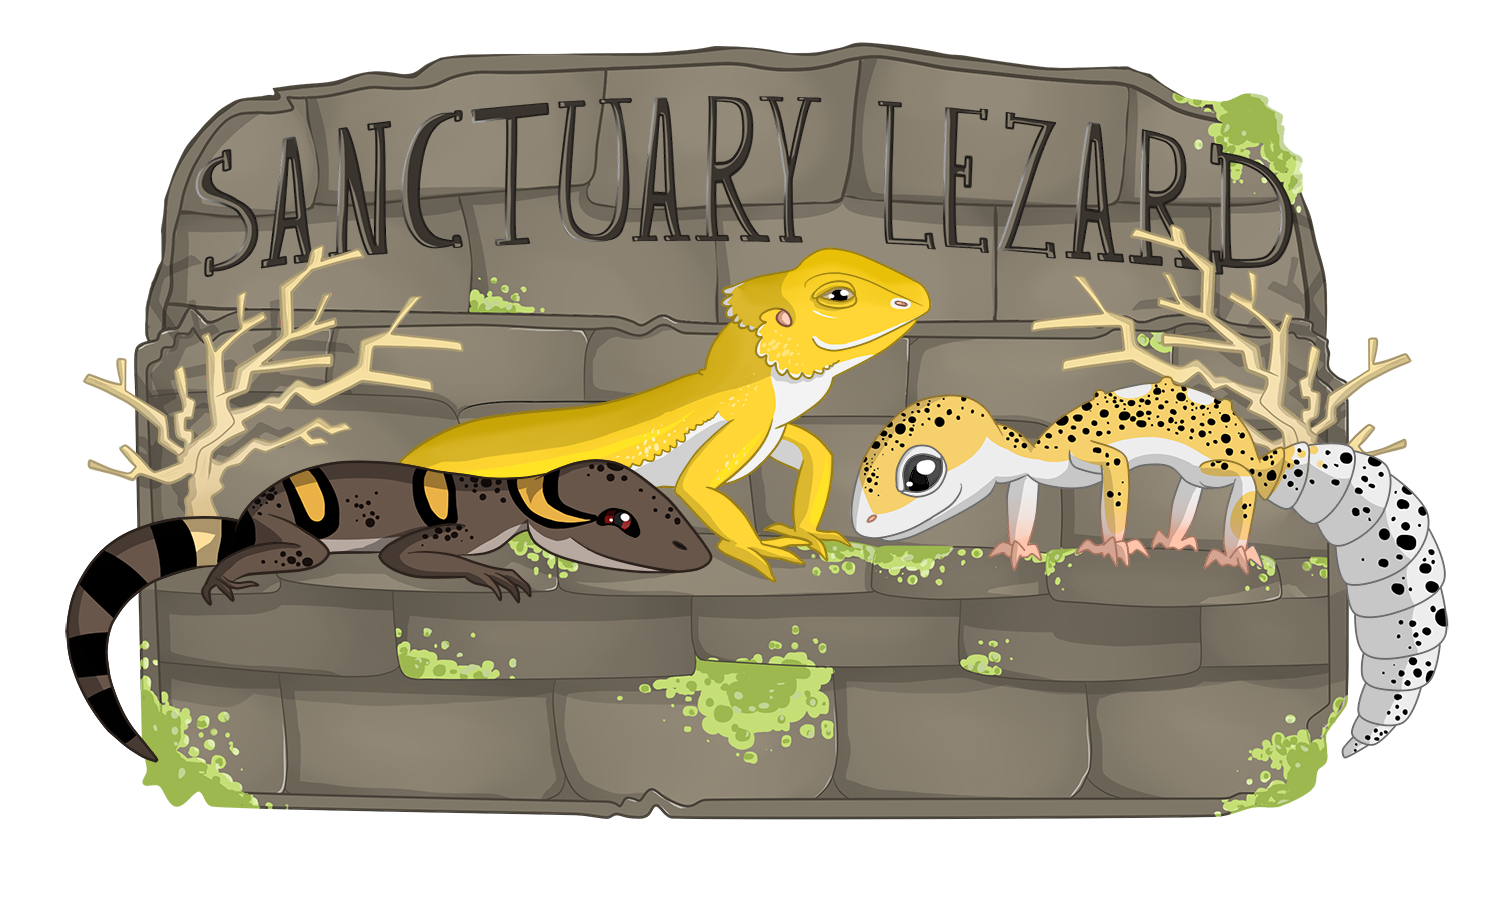 Logo Sanctuary Lezard - 2017